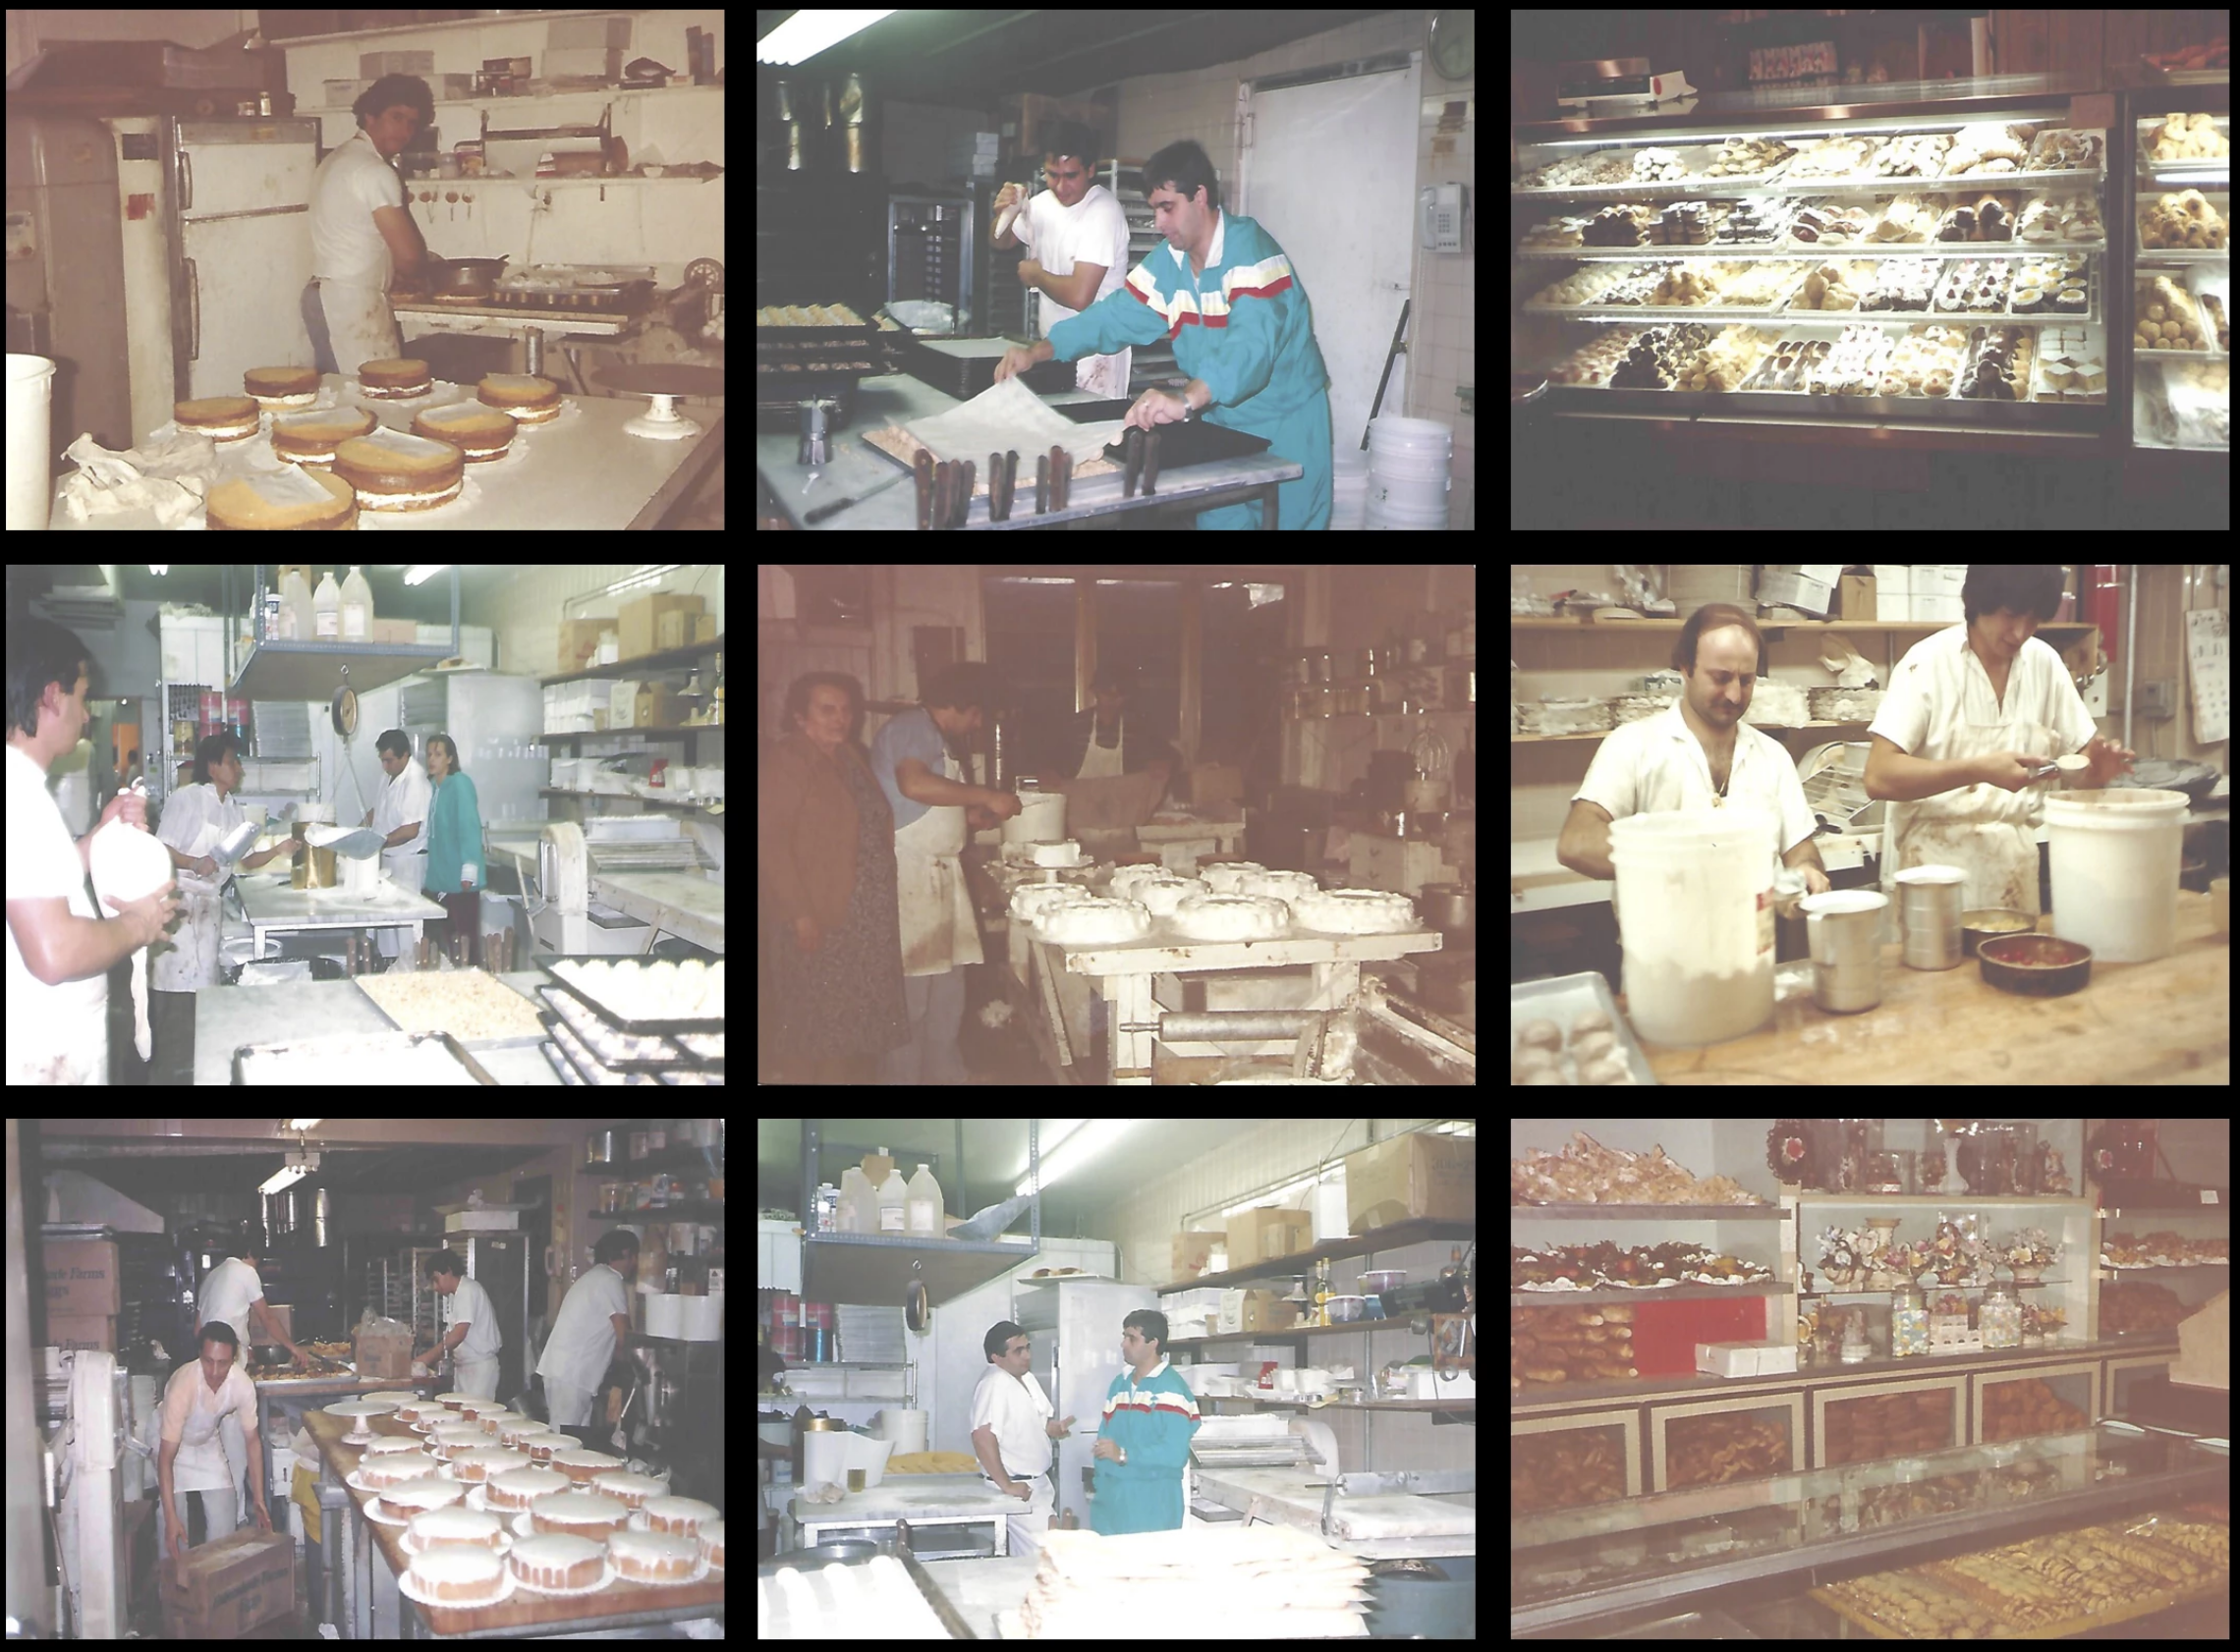 collage of photos including a staff member making cakes, 2 staff members frosting pastries, a photo of the different pastries from behind the glass counter, staff members baking together in the kitchen